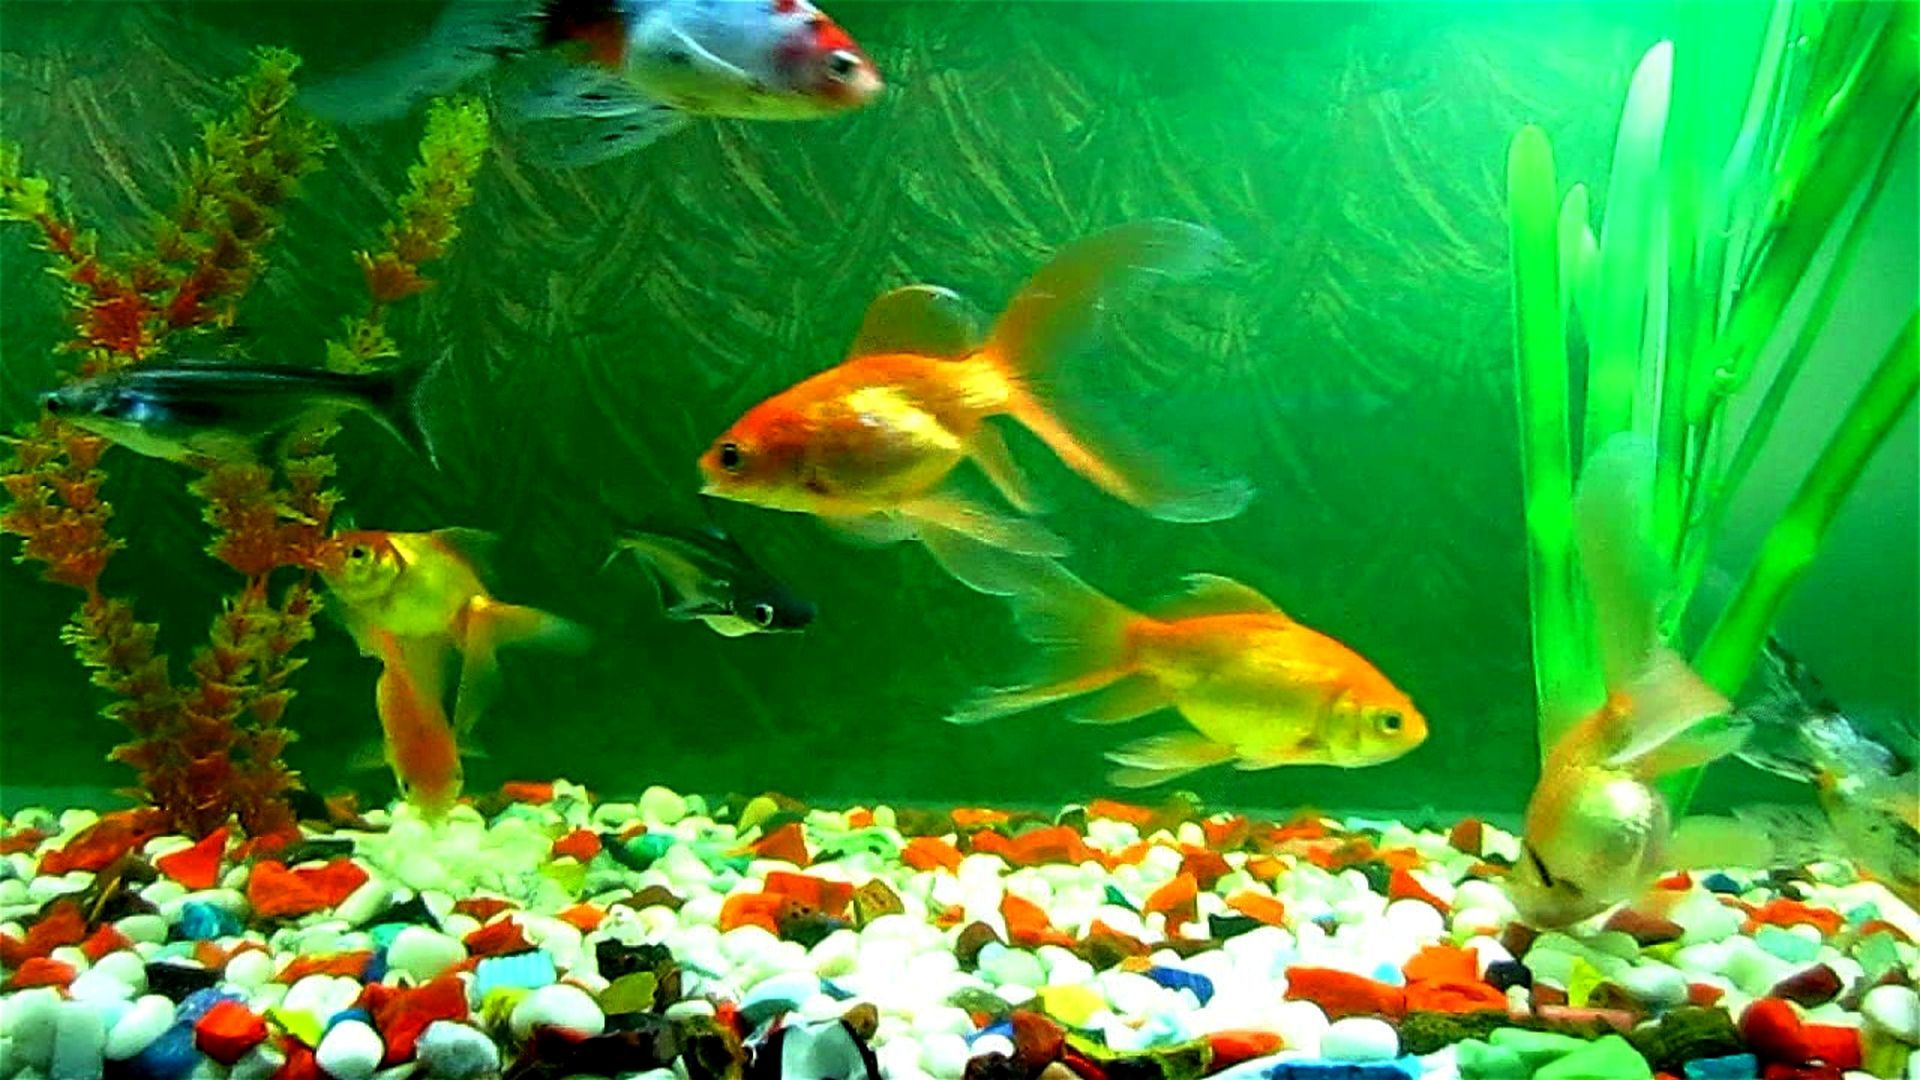 wallpaper fish aquarium 3d